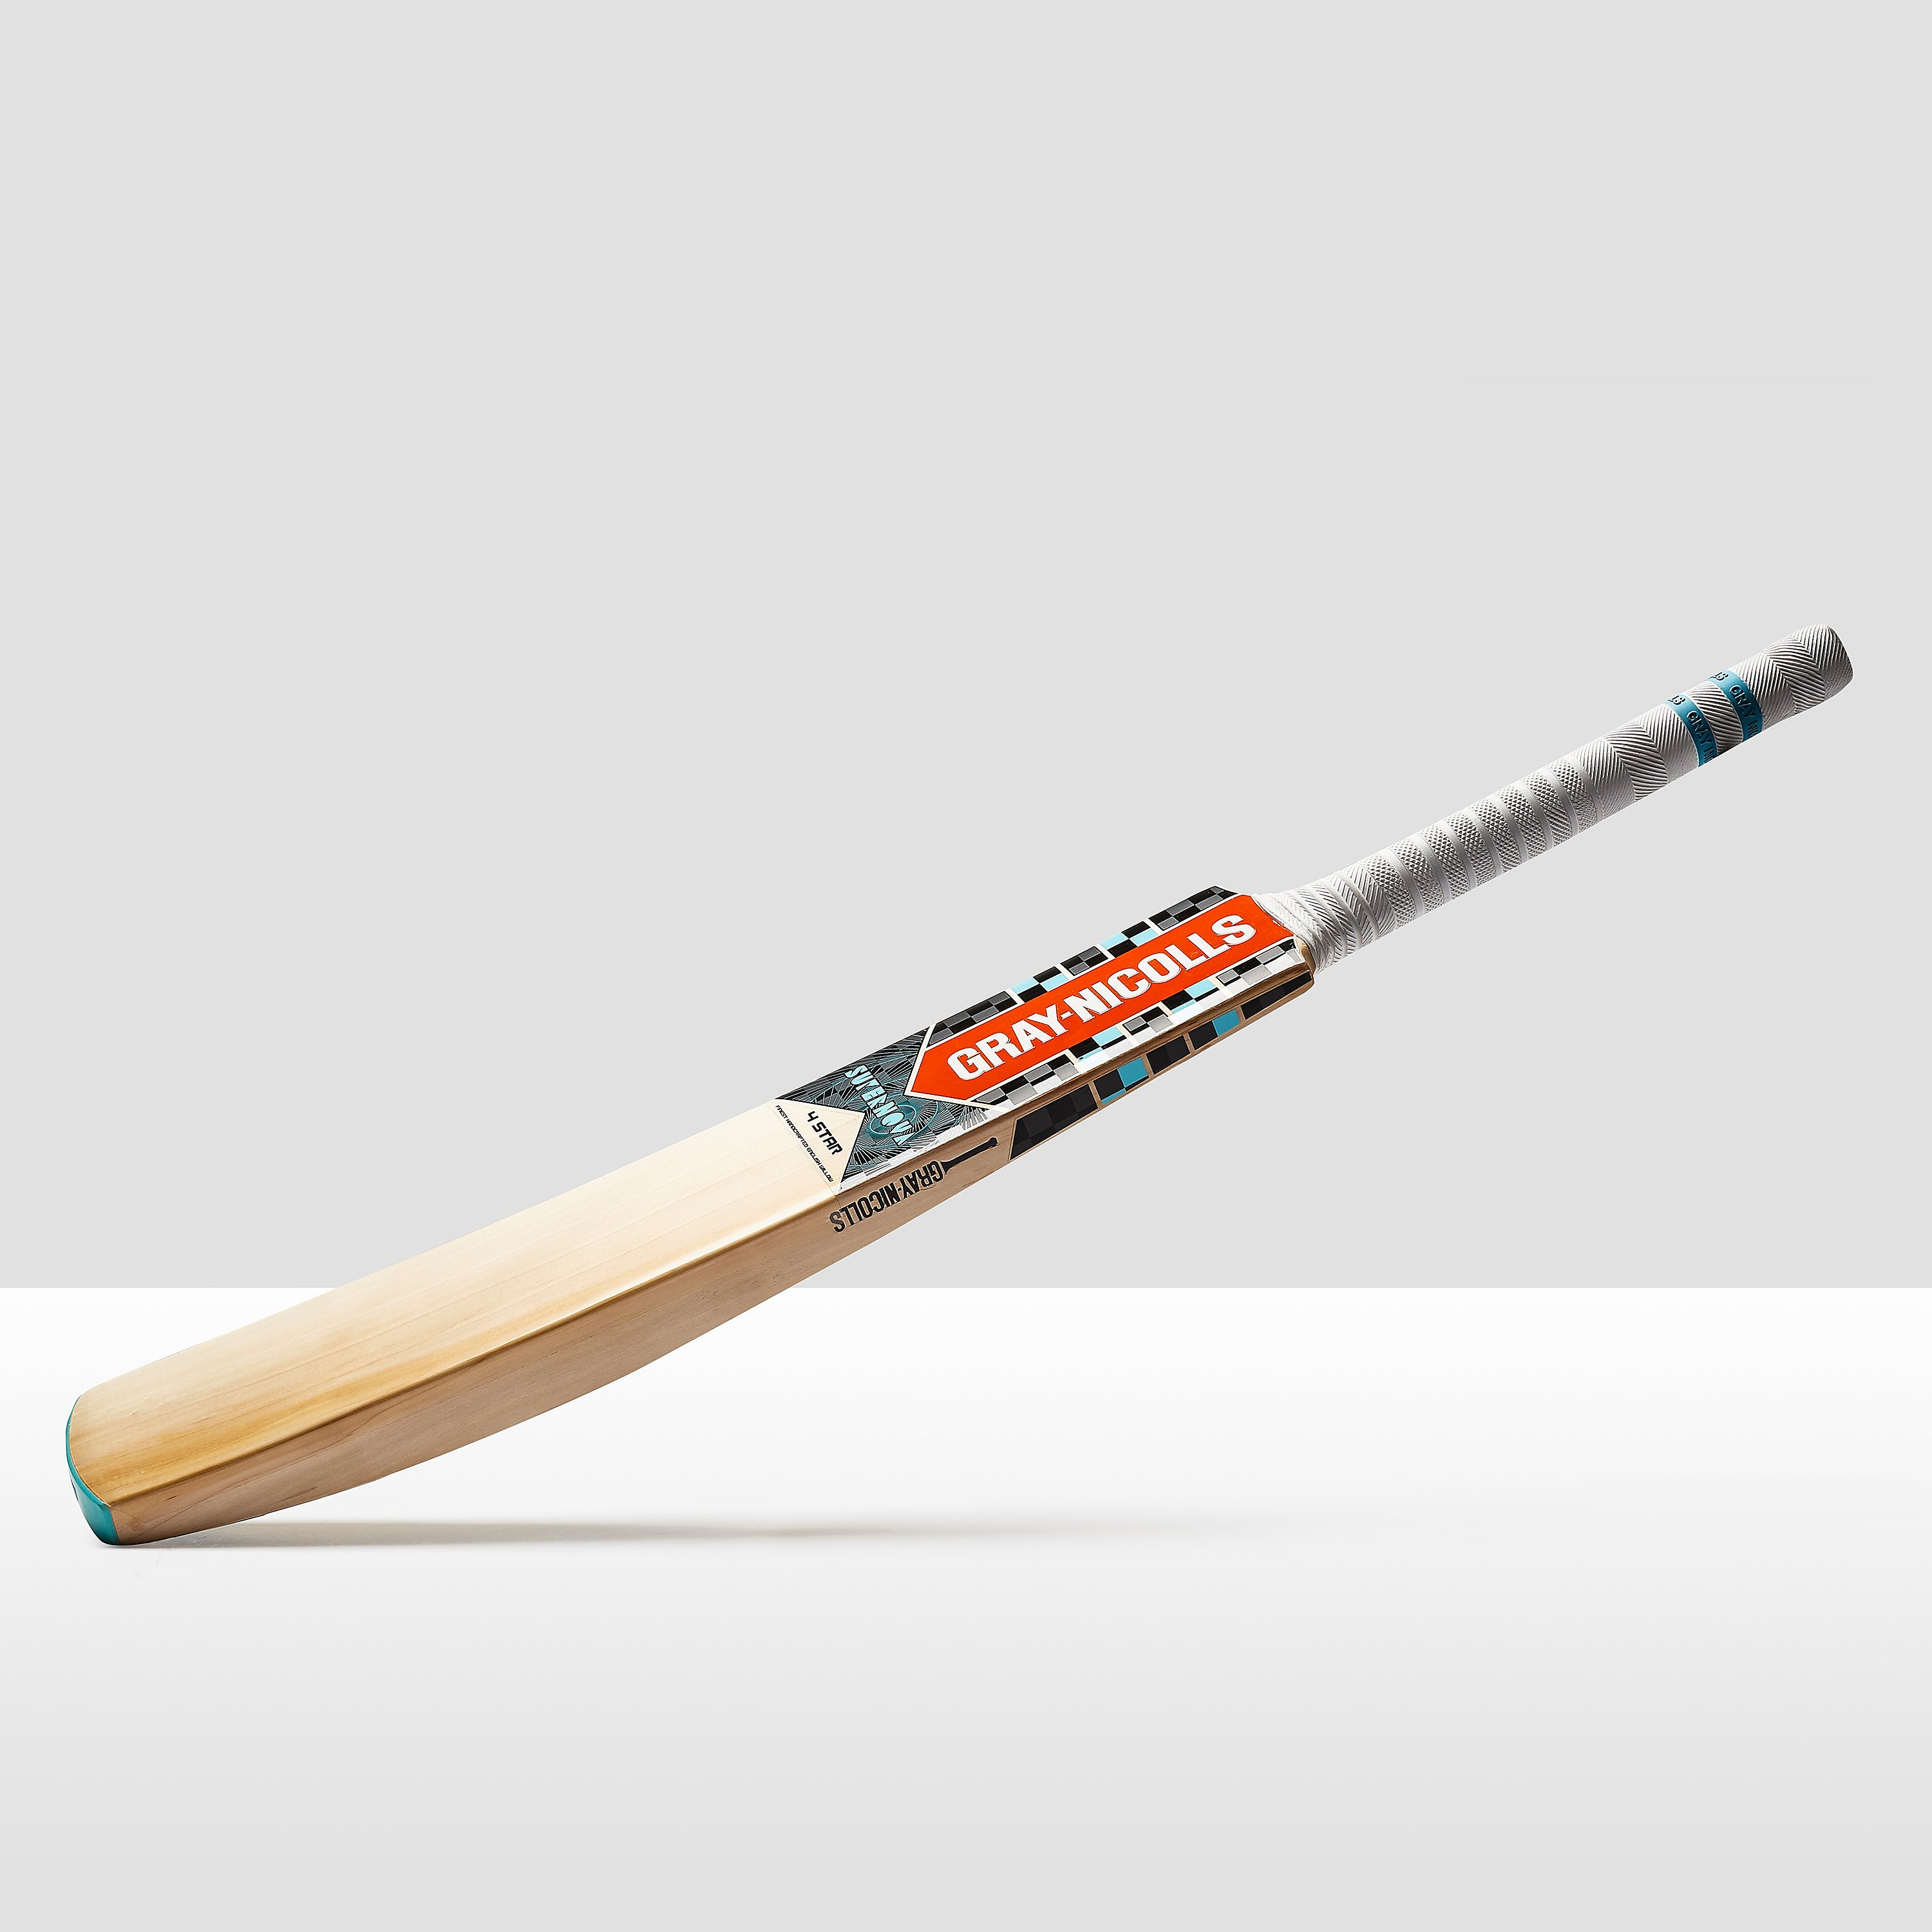 Gray Nicolls SUPERNOVA 4 STAR Cricket Bat